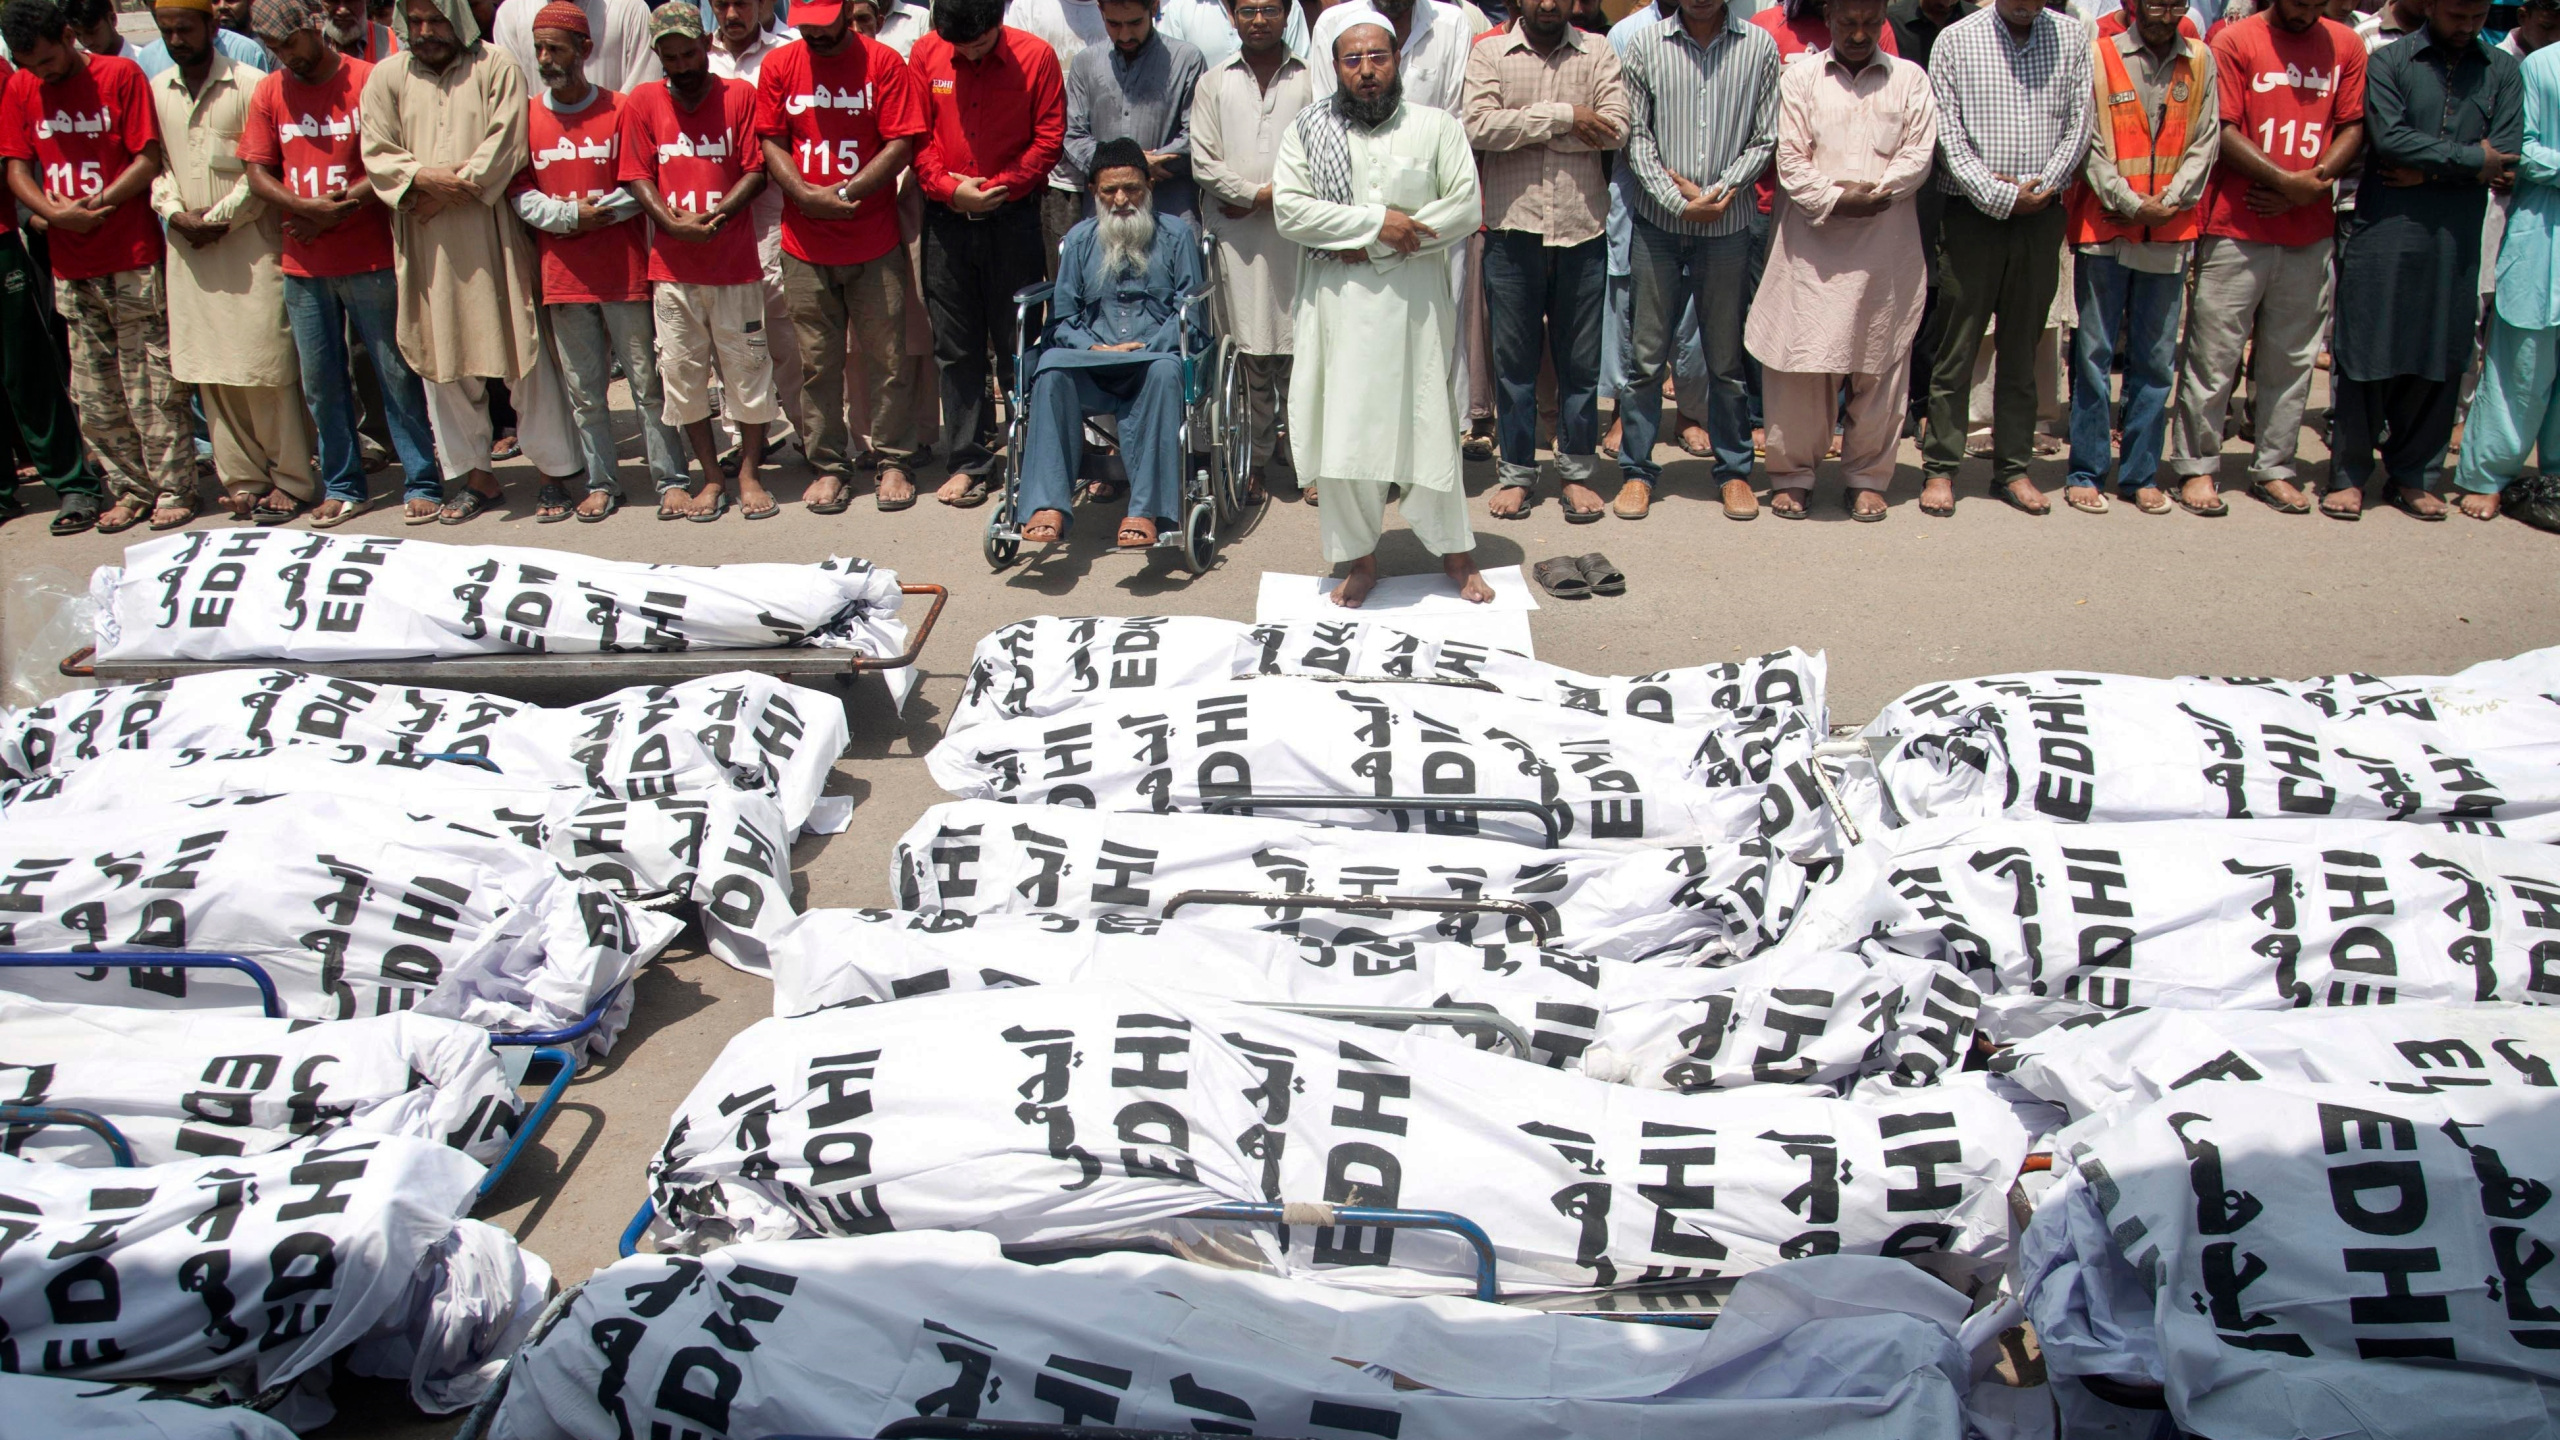 In this June 26, 2015 file photo, mourners attend a funeral for unclaimed people who died of extreme weather in Karachi, Pakistan after a devastating heat wave that struck southern Pakistan the previous weekend, with over 800 confirmed deaths according to a senior health official. A study published in Nature Climate Change on May 31, 2021, has calculated that more than one-third of global heat deaths can directly be attributed to human-caused climate change. (Shakil Adil/Associated Press)